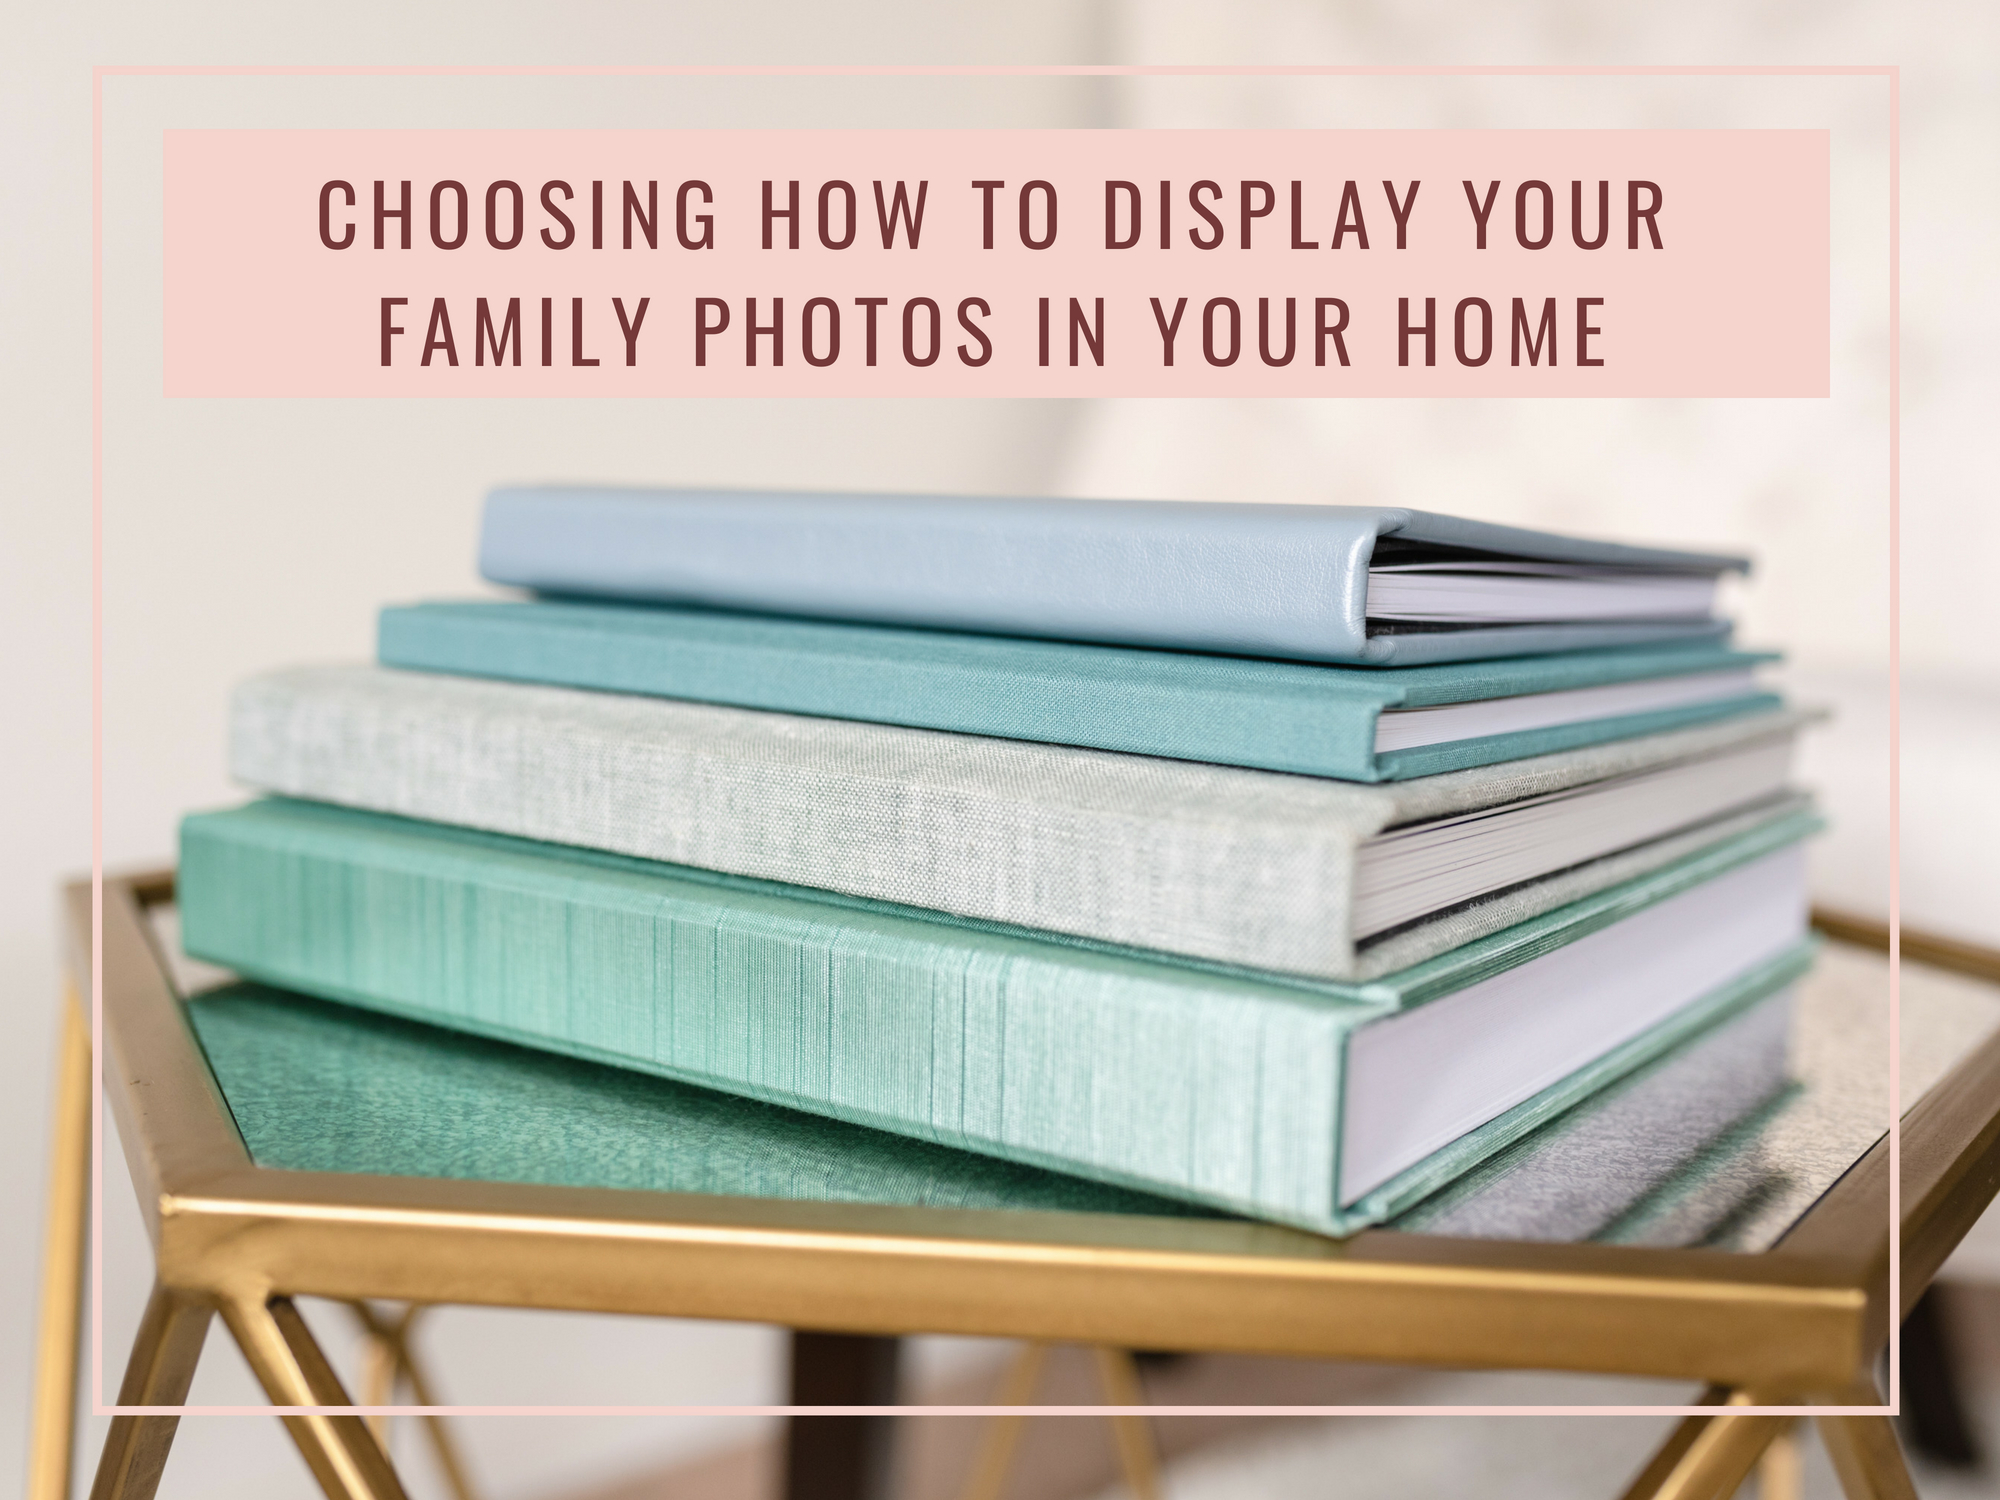 photo book with family photos